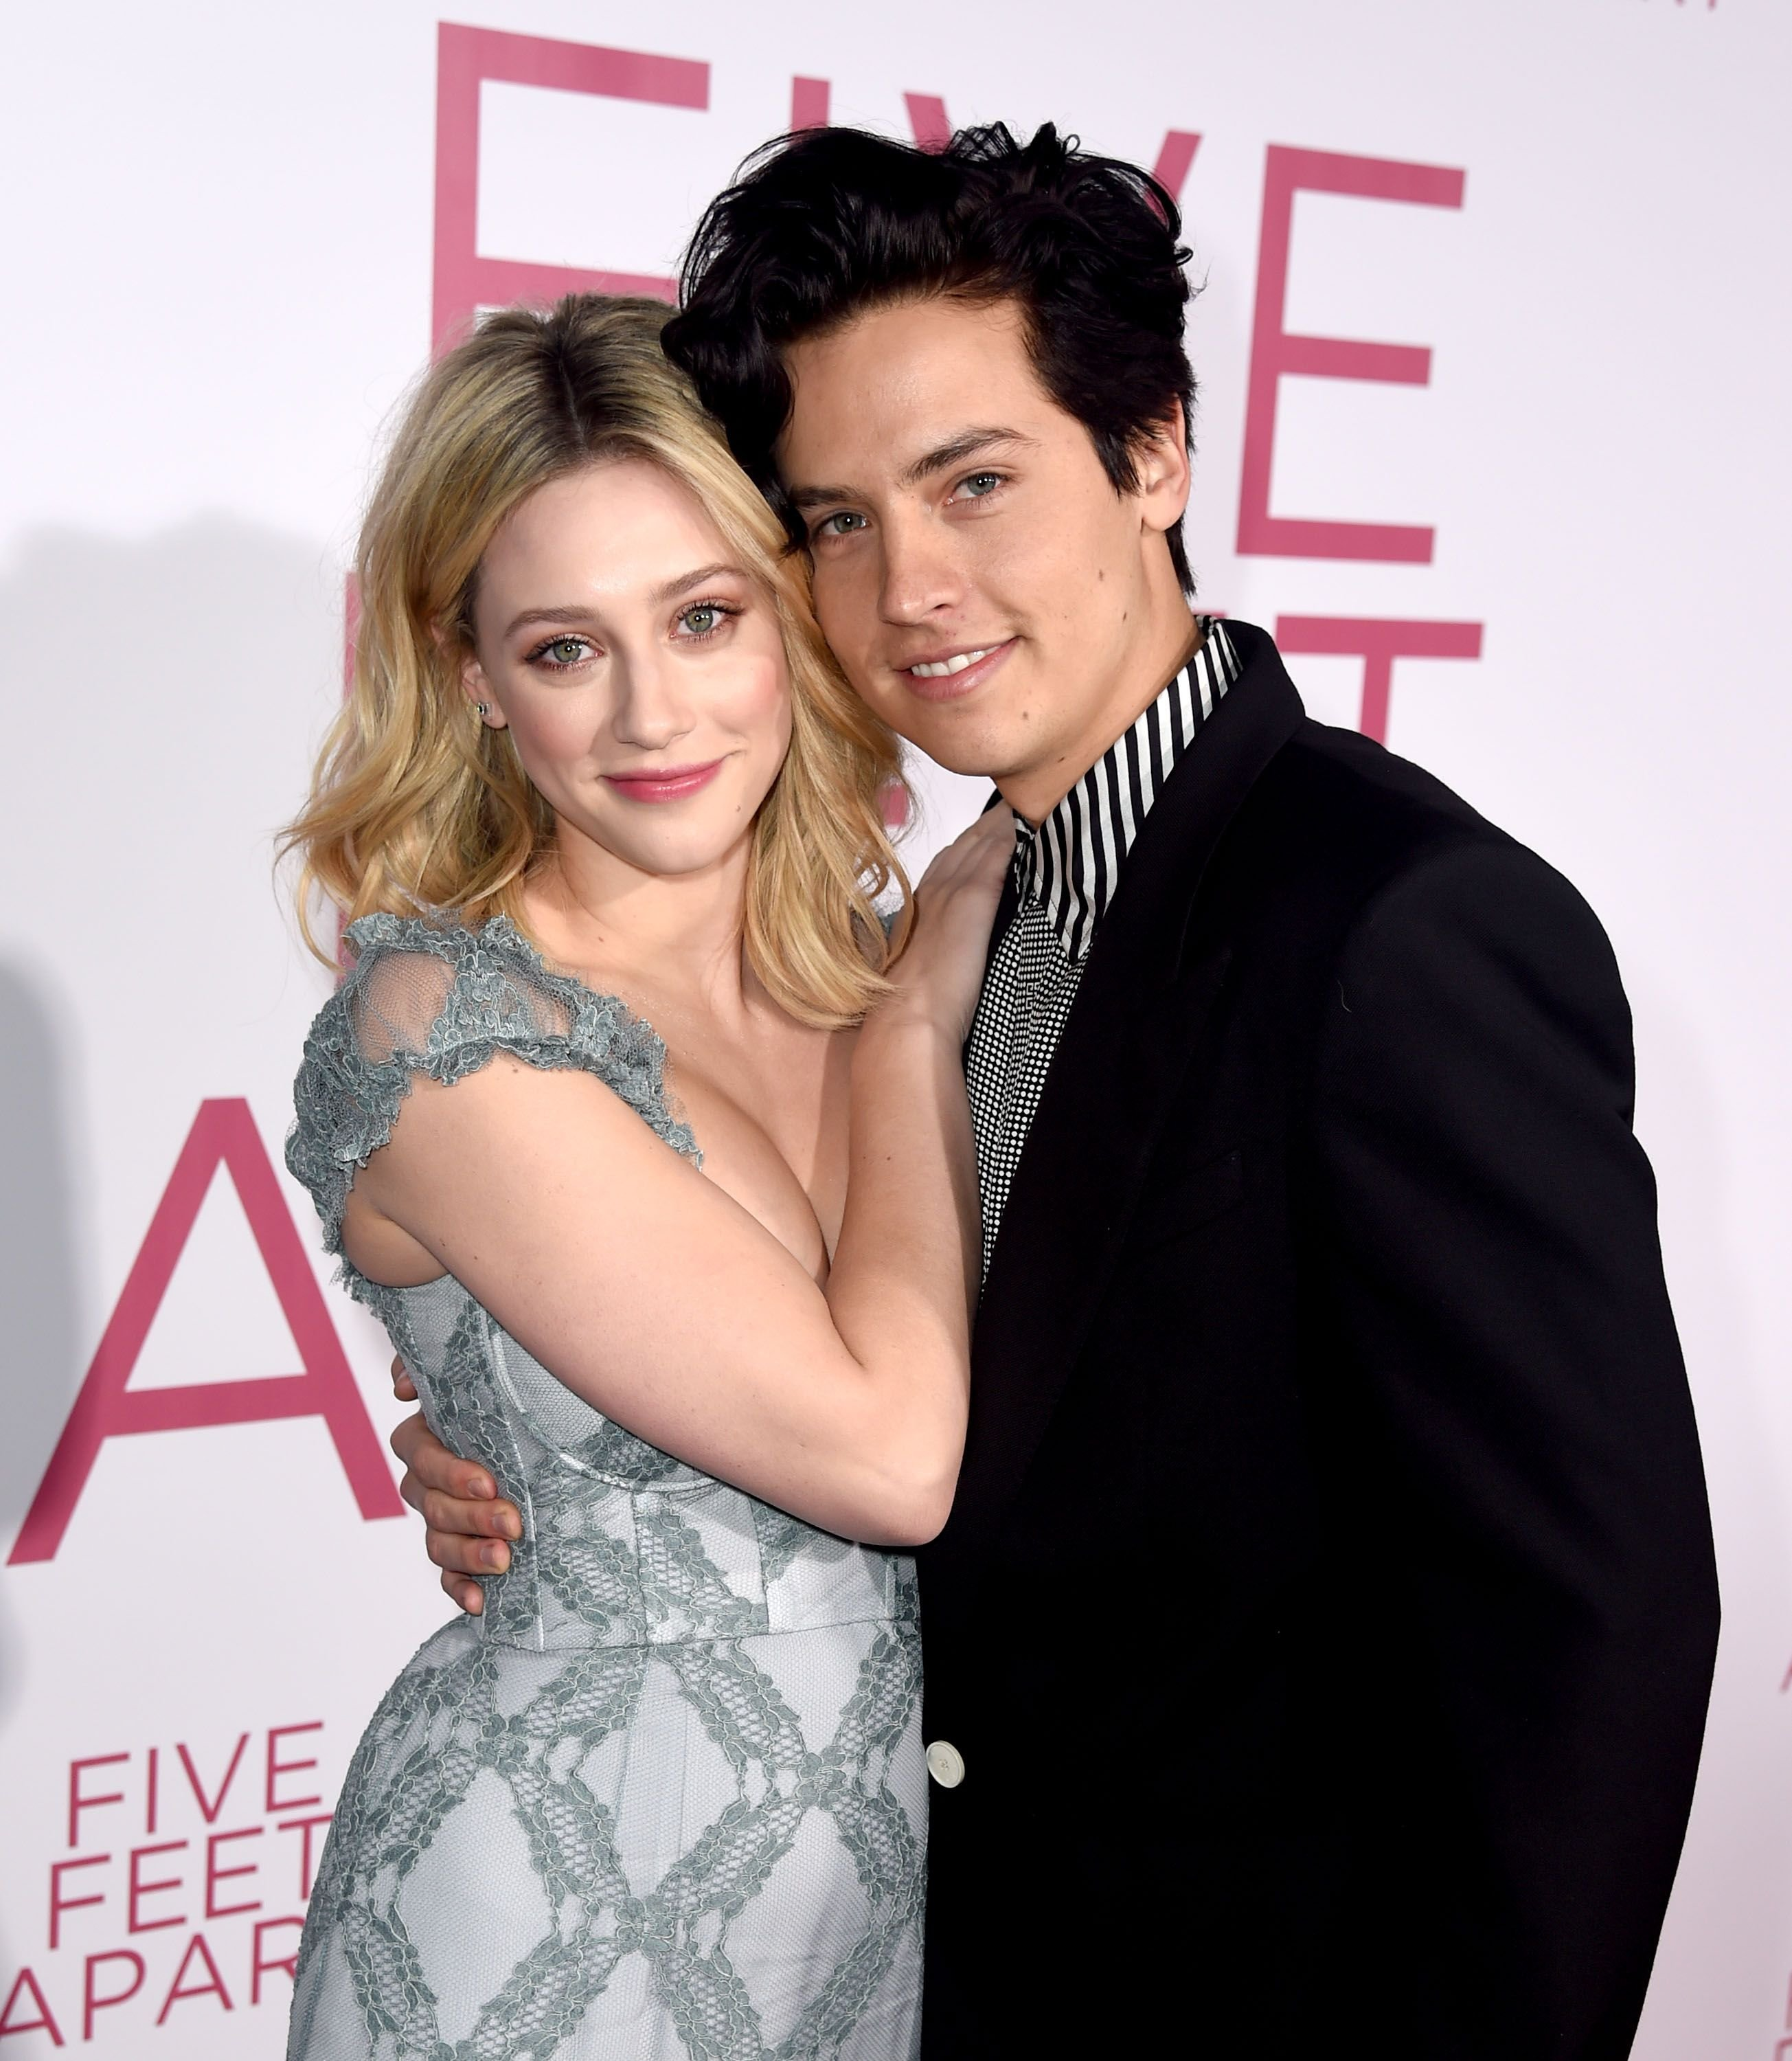 """Lili Reinhart and Cole Sprouse at the premiere of """"Five Feet Apart"""" in 2019 in Los Angeles, California 